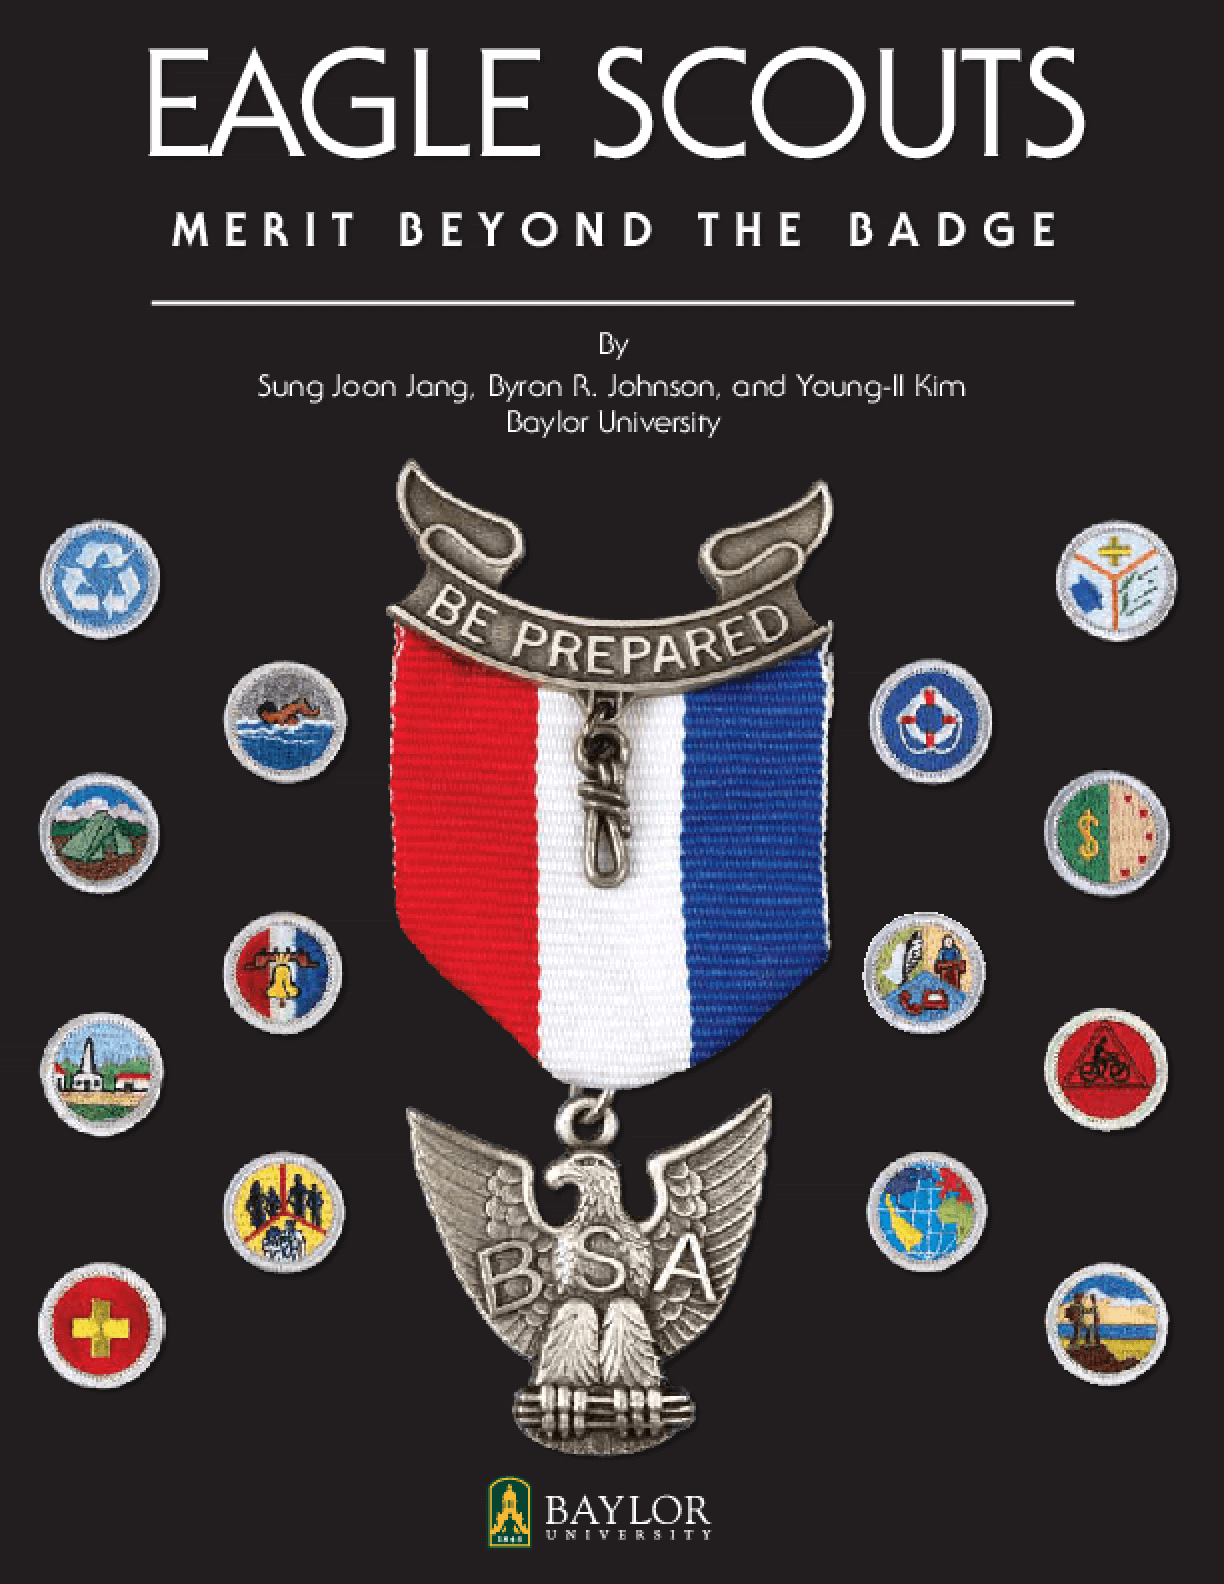 Eagle Scouts: Merit Beyond the Badge